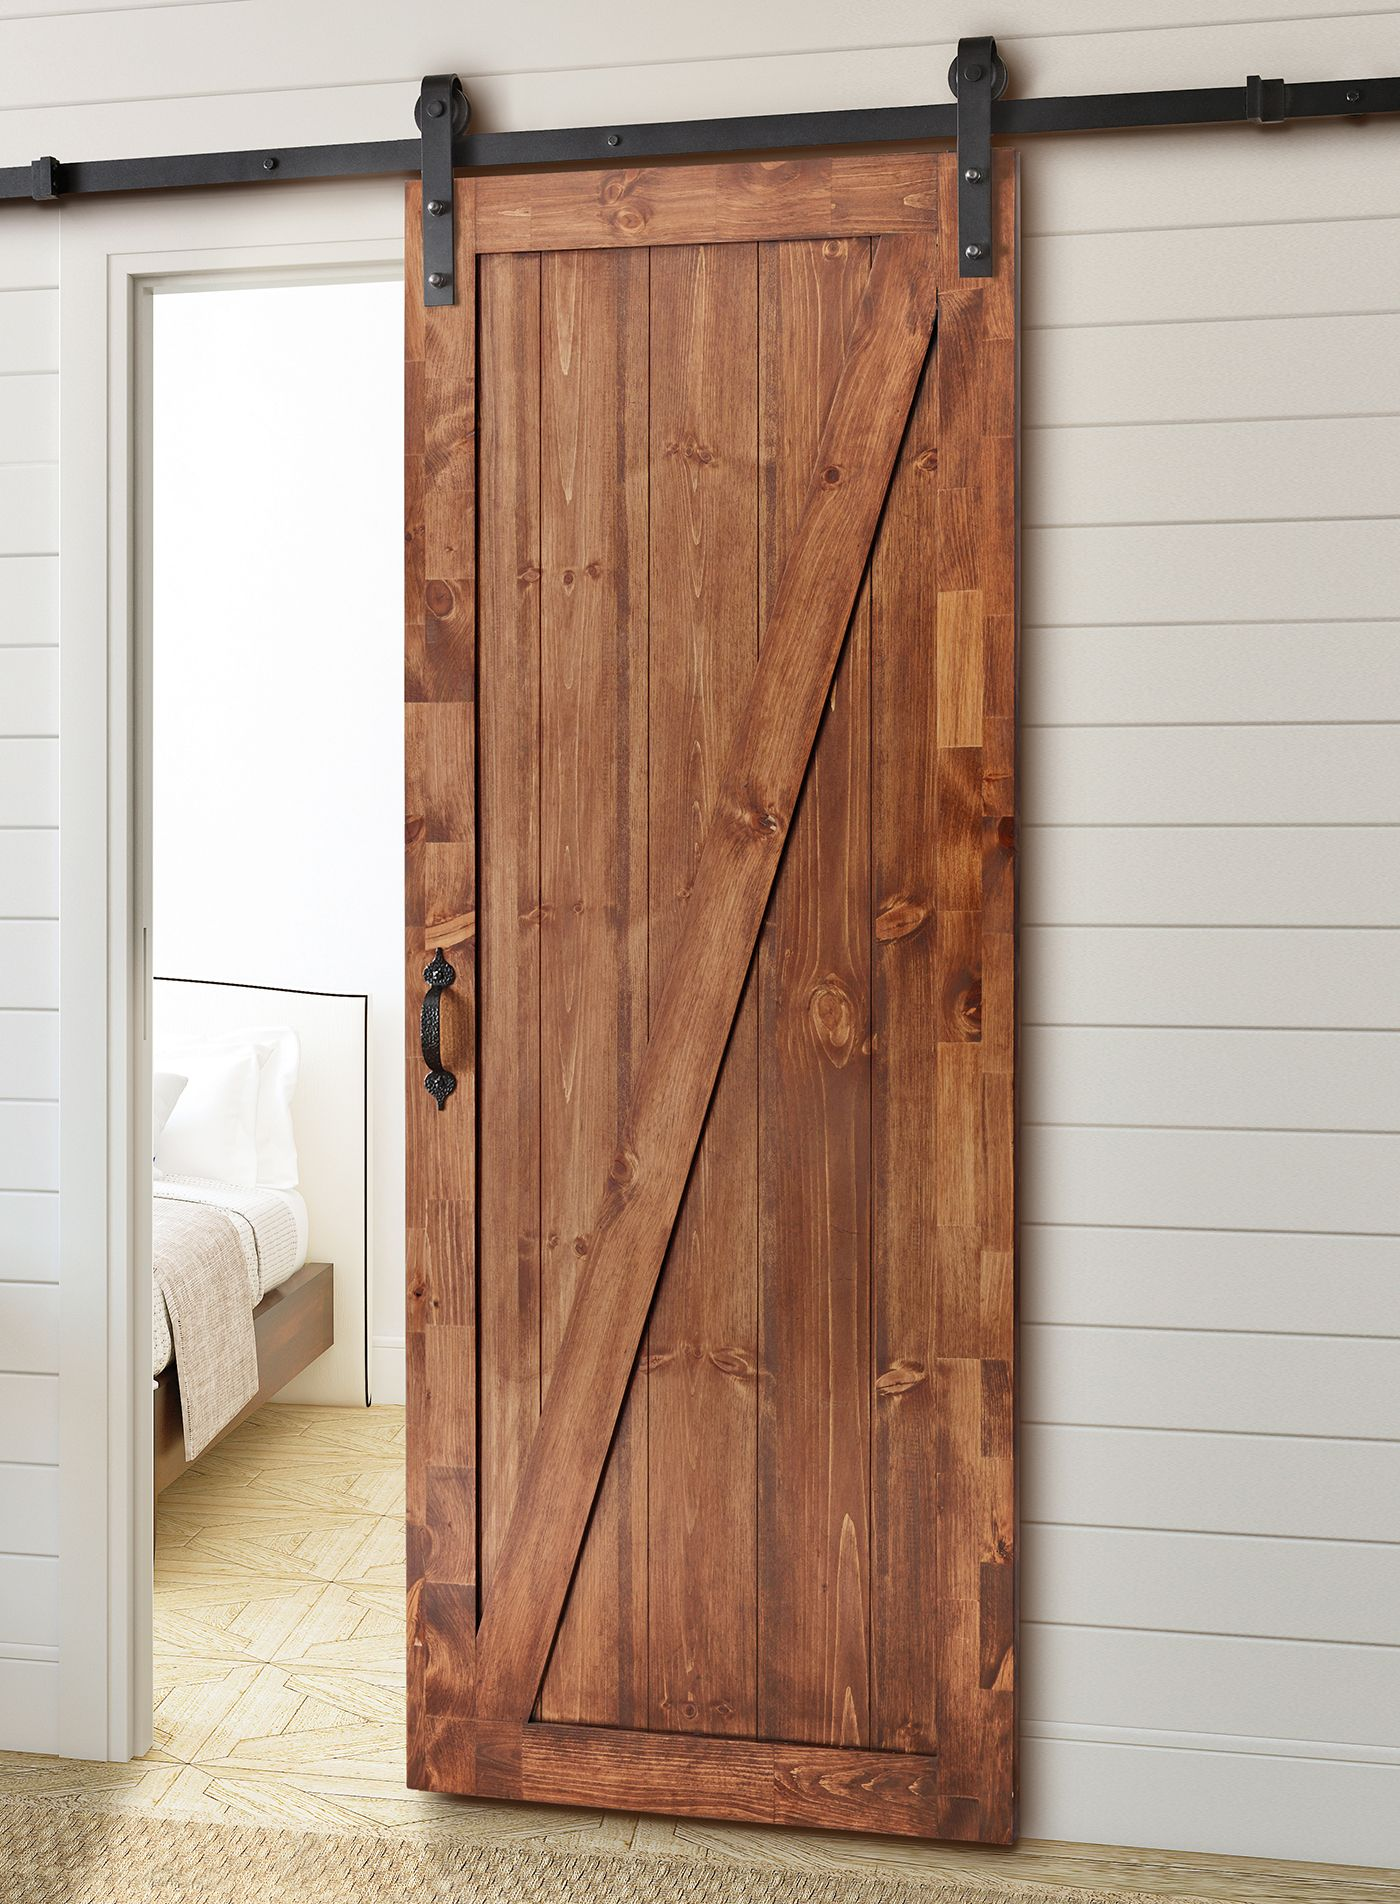 Perfect For Any Opening This Rustic Sliding Barn Door Kit